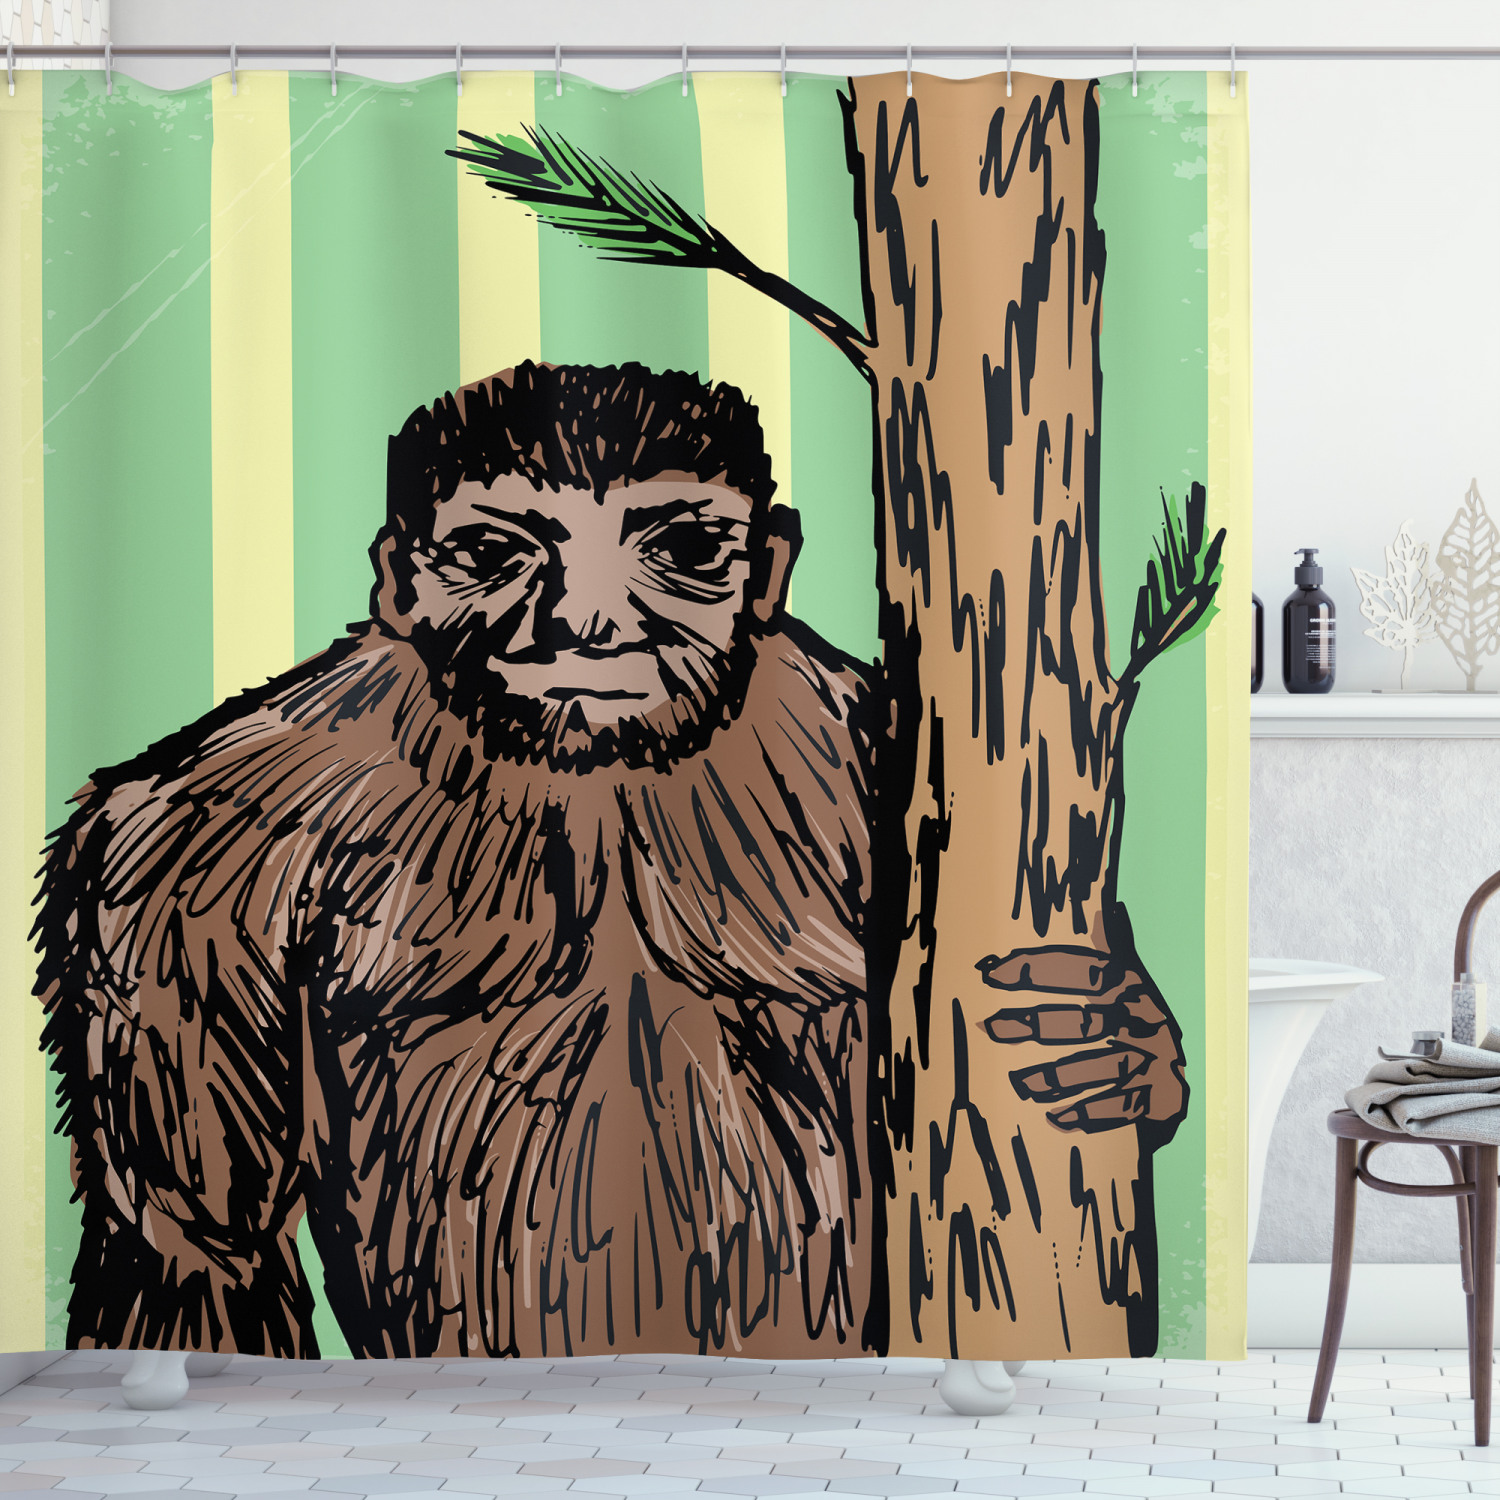 bigfoot shower curtain artistic sketch of mysterious yeti holding a tree trunk on striped background print fabric bathroom set with hooks 69w x 70l